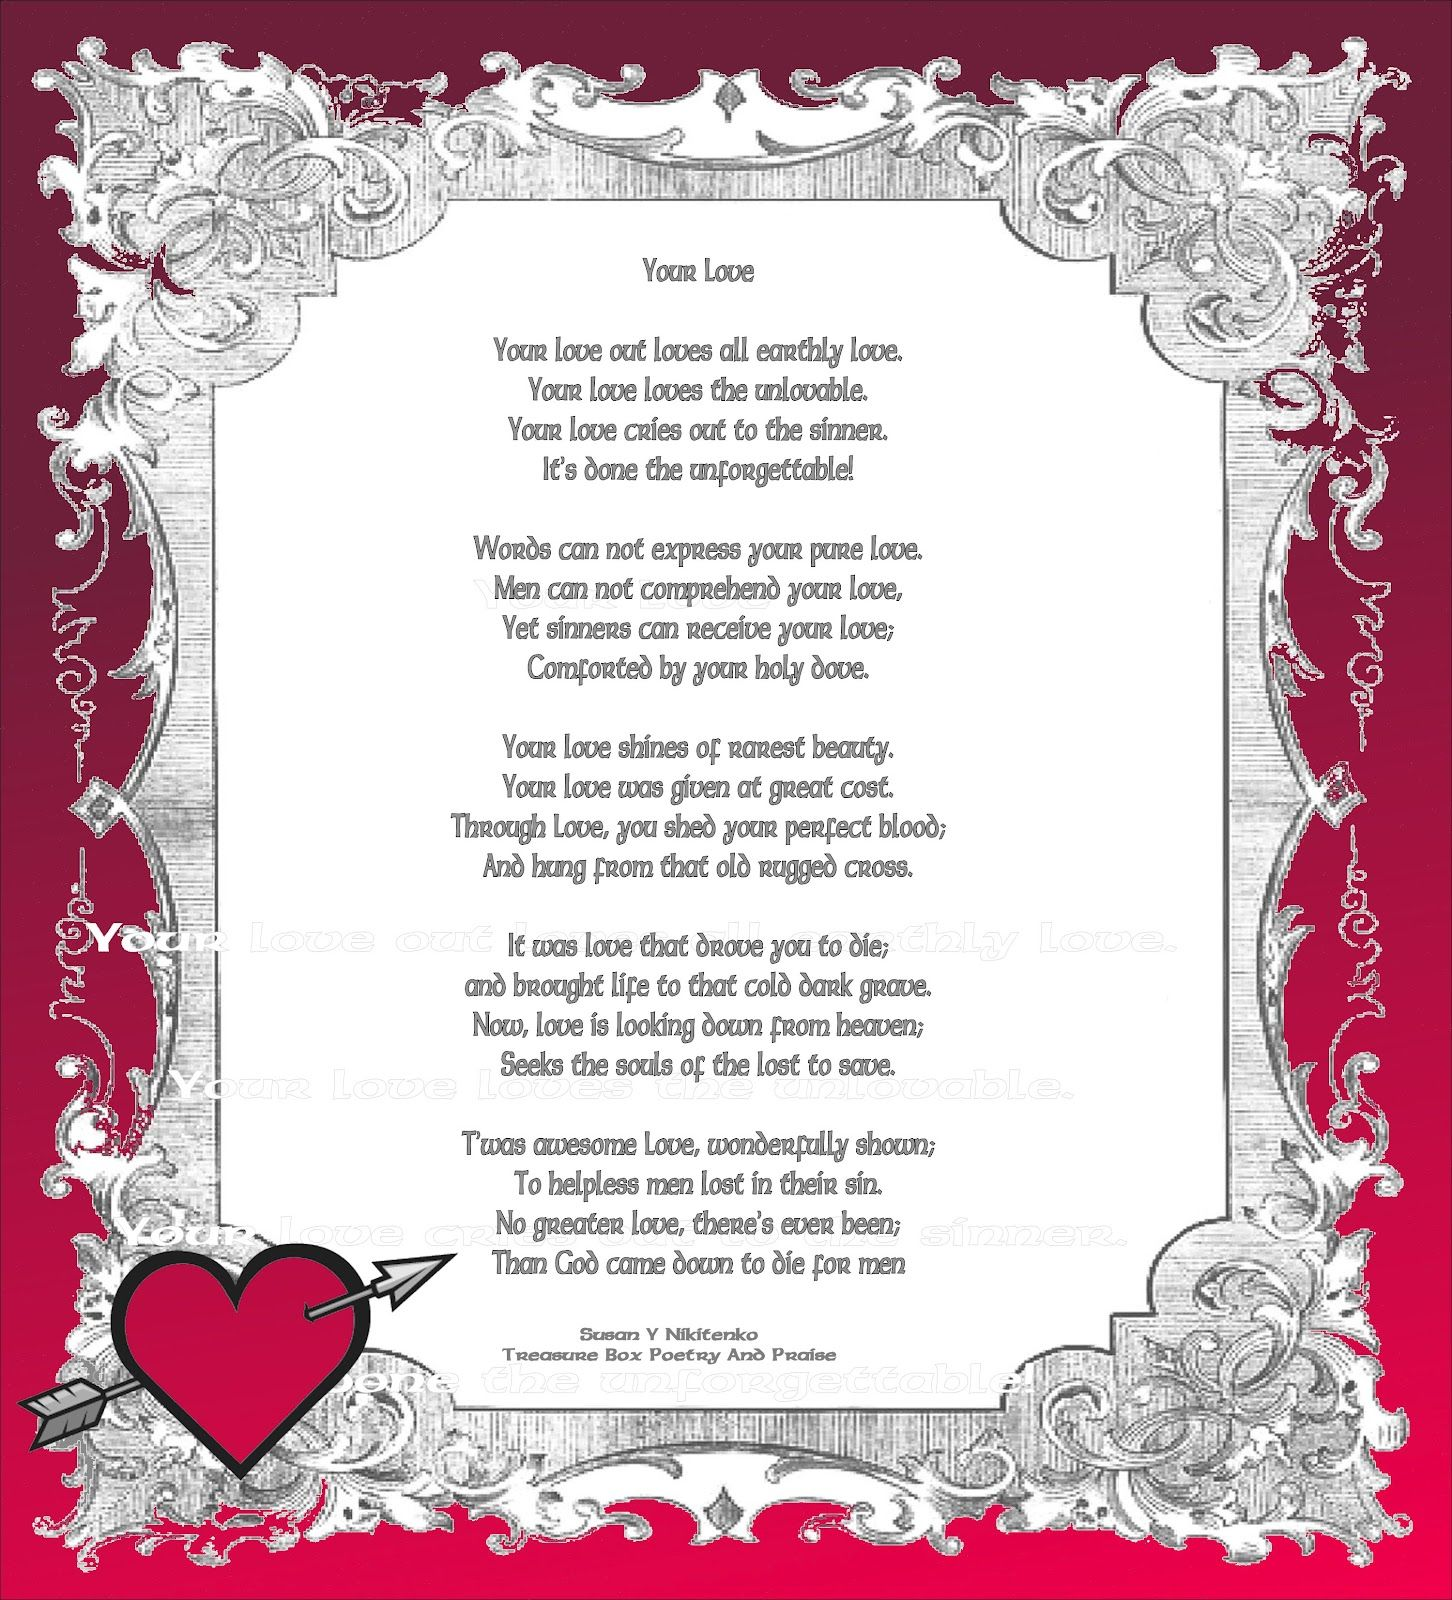 Love Poems That Rhyme For Your Boyfriend Poems – Romantic Valentine Card Sayings